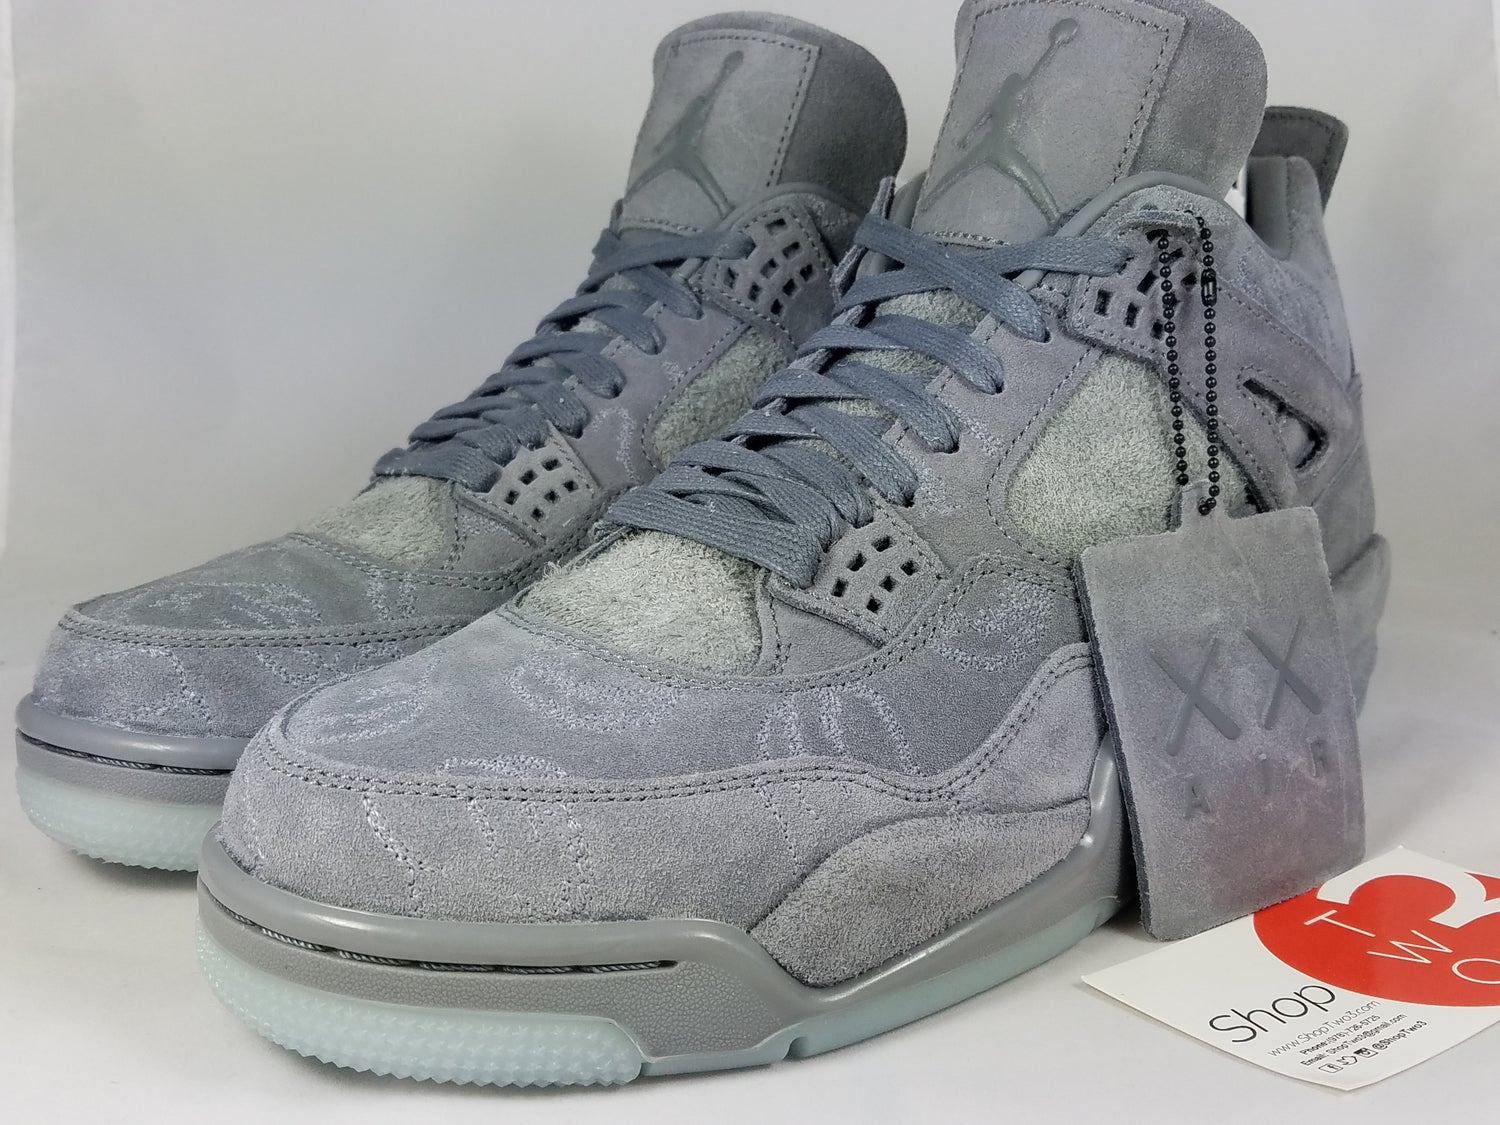 Image of Jordan 4 Retro Kaws